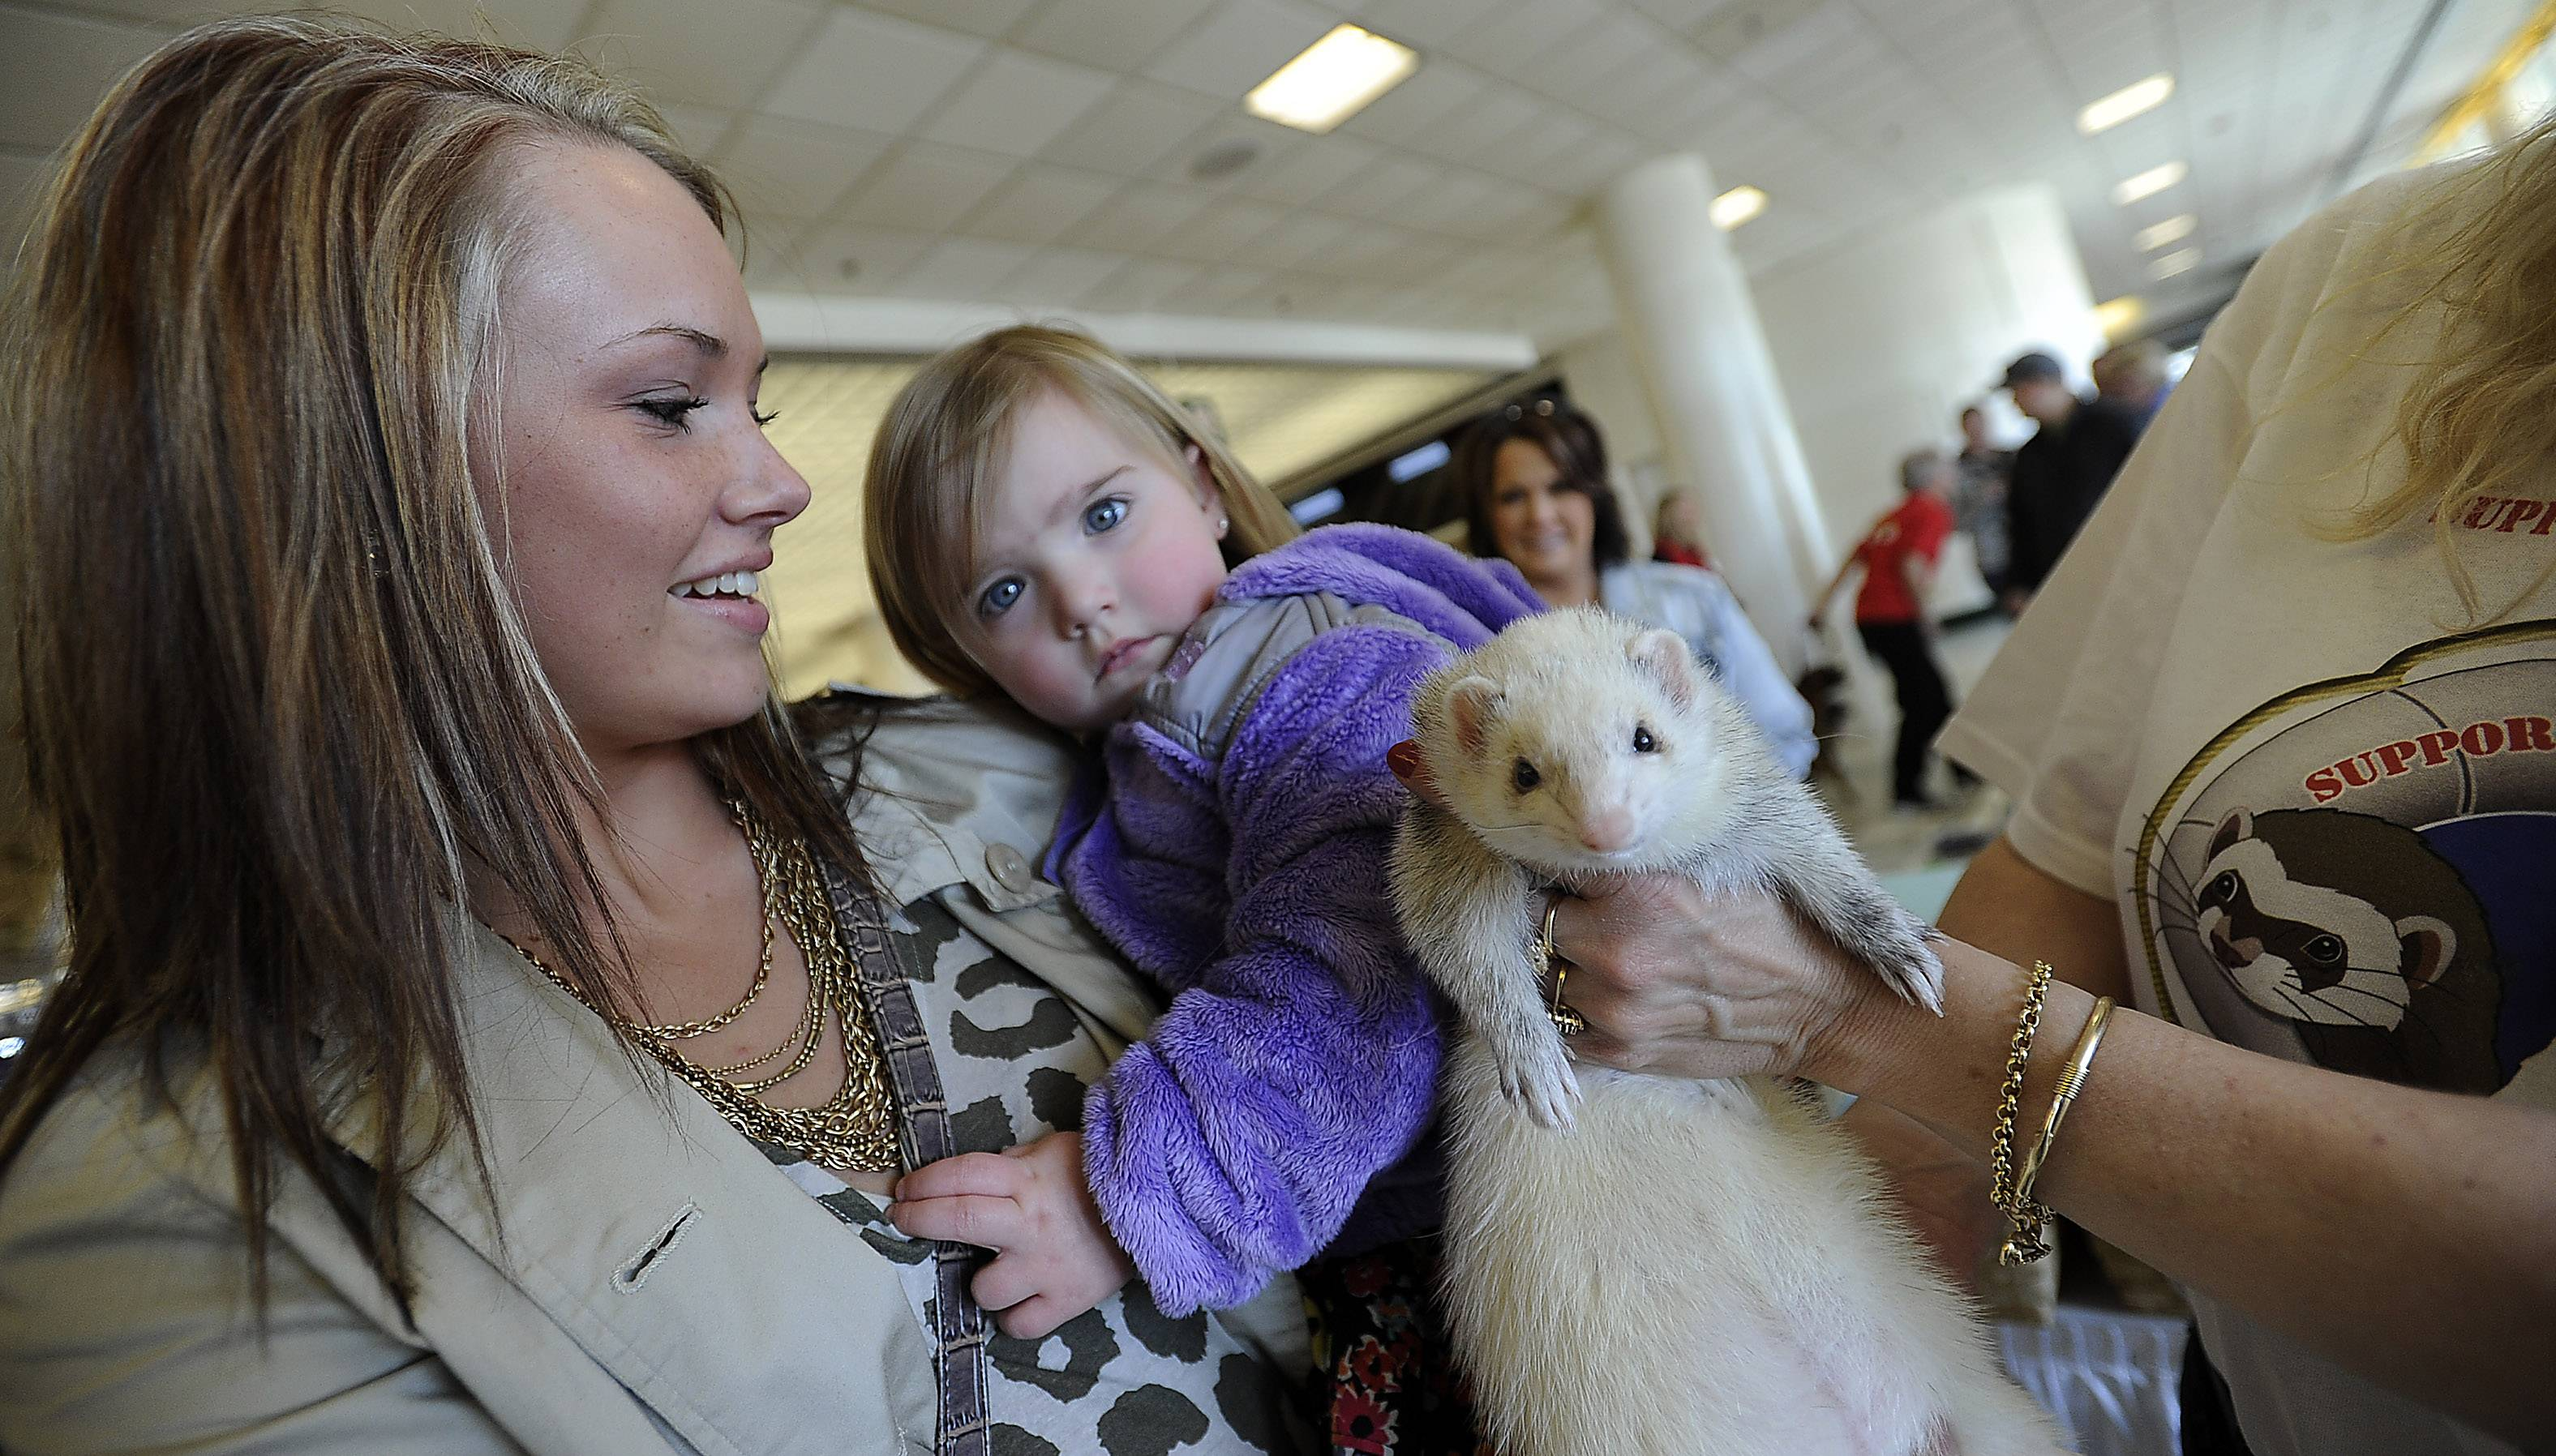 Chloe Janich and her daughter Ella, 2, of Milwaukee, Wis., check out the ferret Meeko on Friday at the Chicagoland Family Pet Expo at Arlington Park.